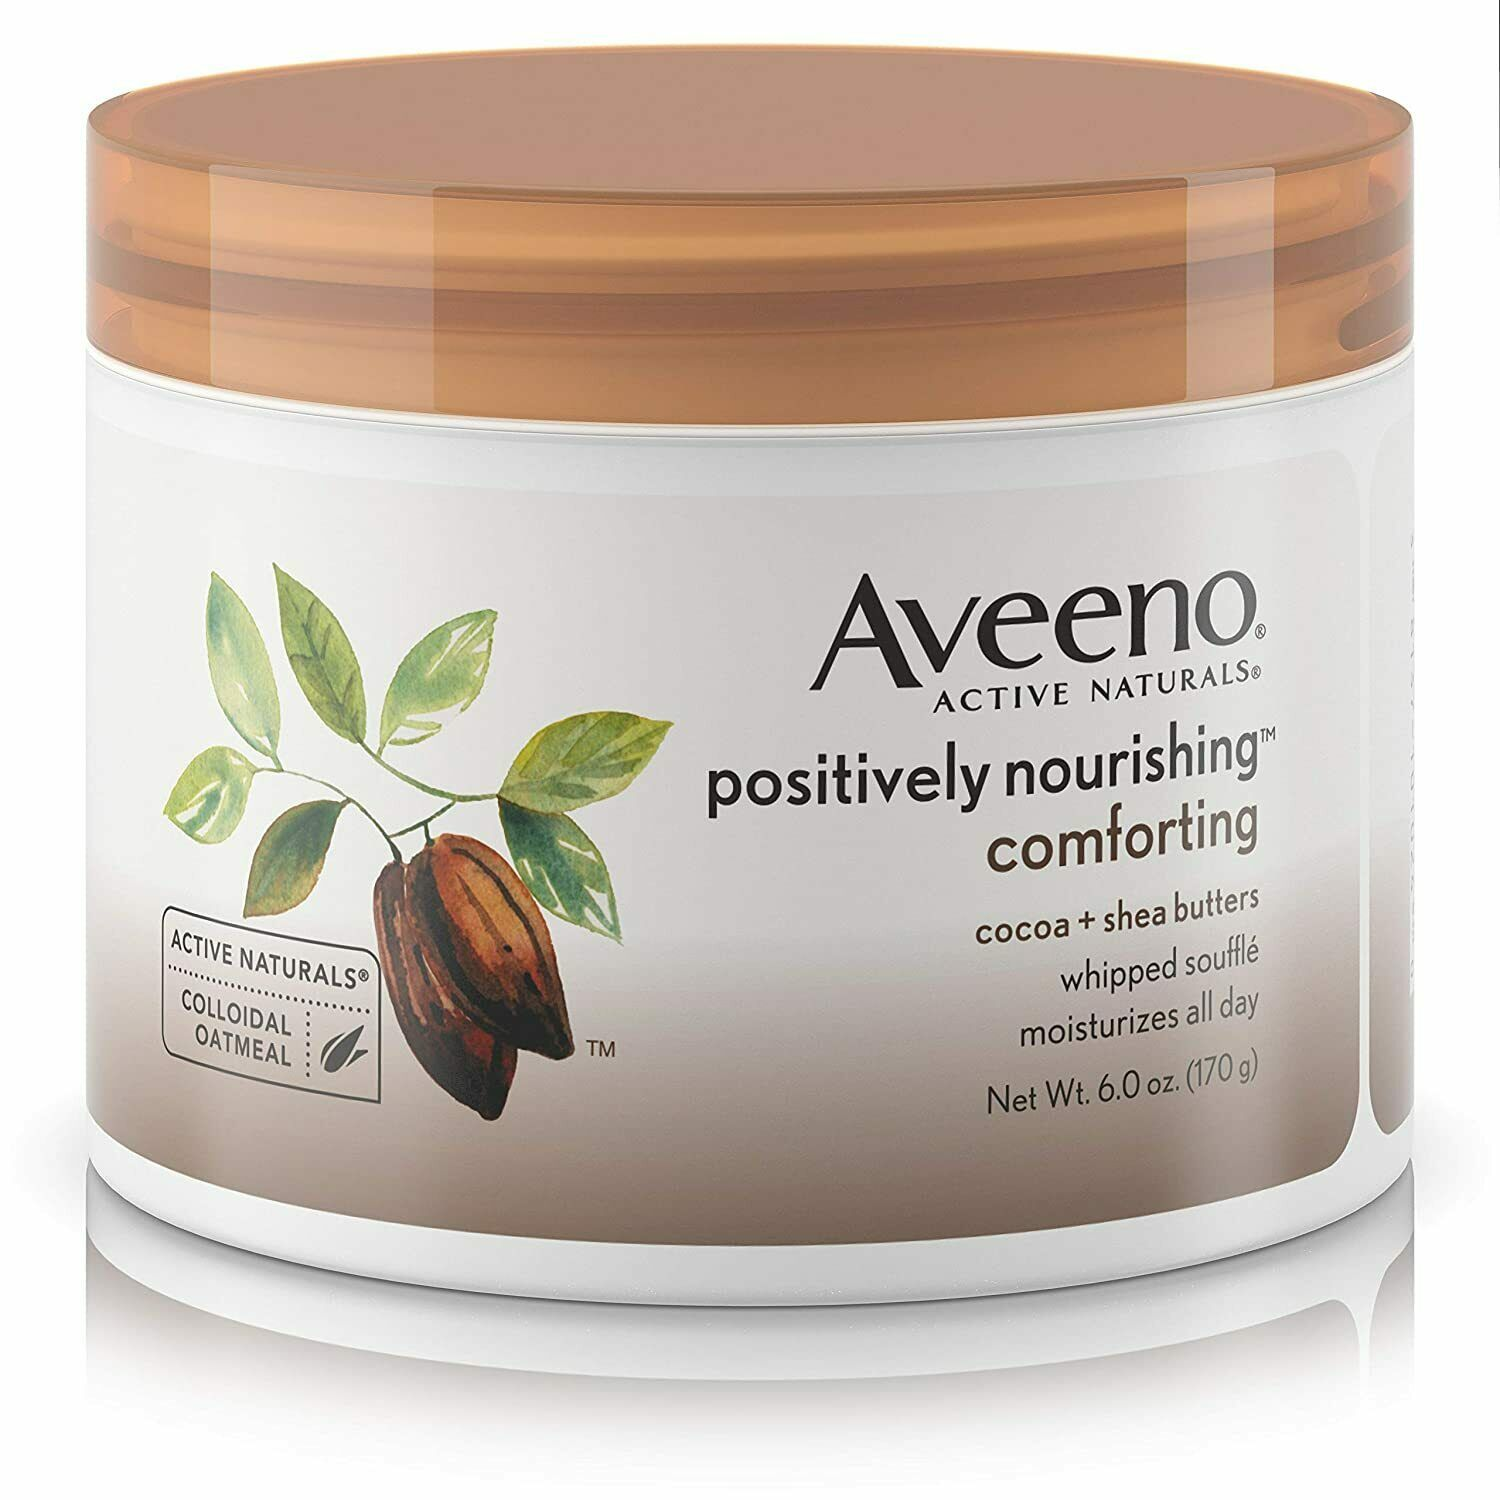 Aveeno Active Naturals Positively Nourishing Whipped Souffle Cocoa+Shea Butters - $27.99